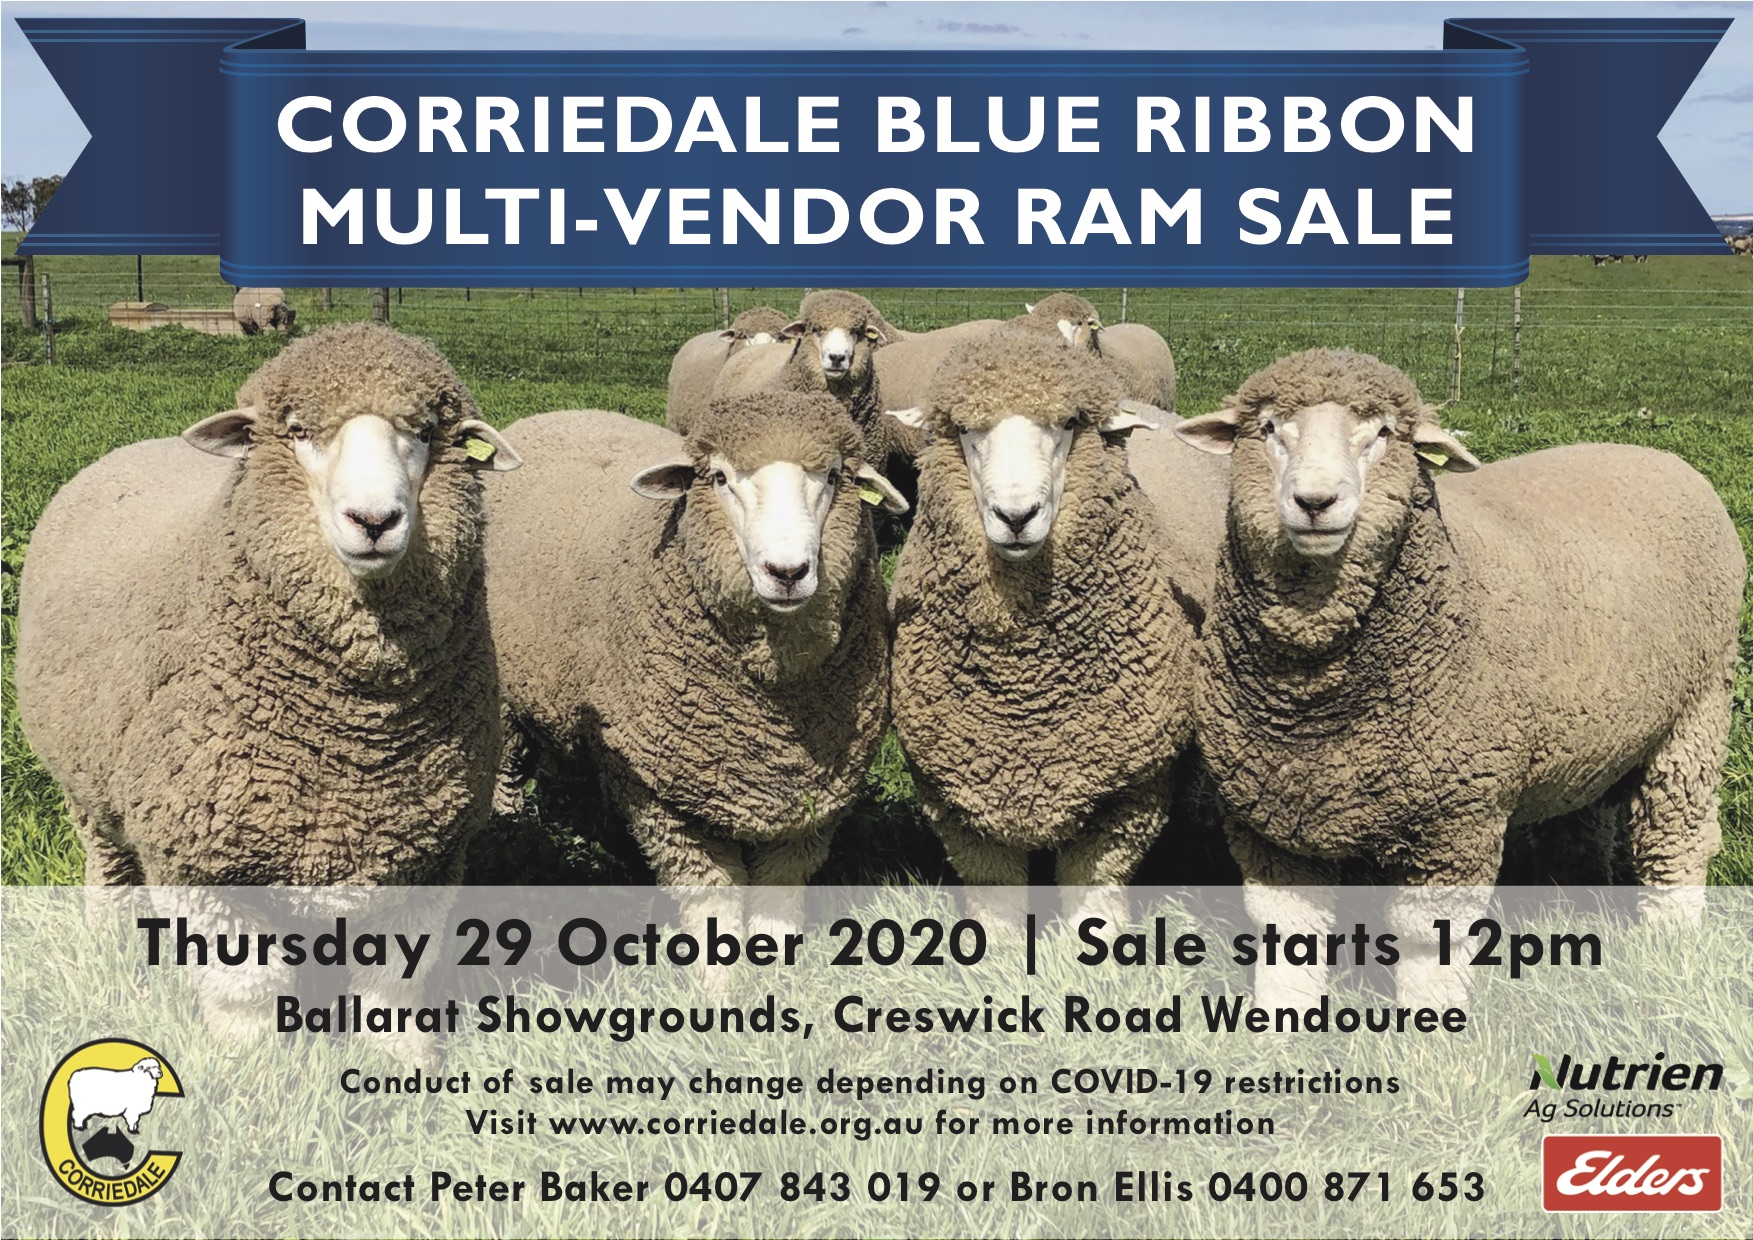 CORRIEDALE%20MULTI-VENDOR%20RAM%20SALE%202020.JPG